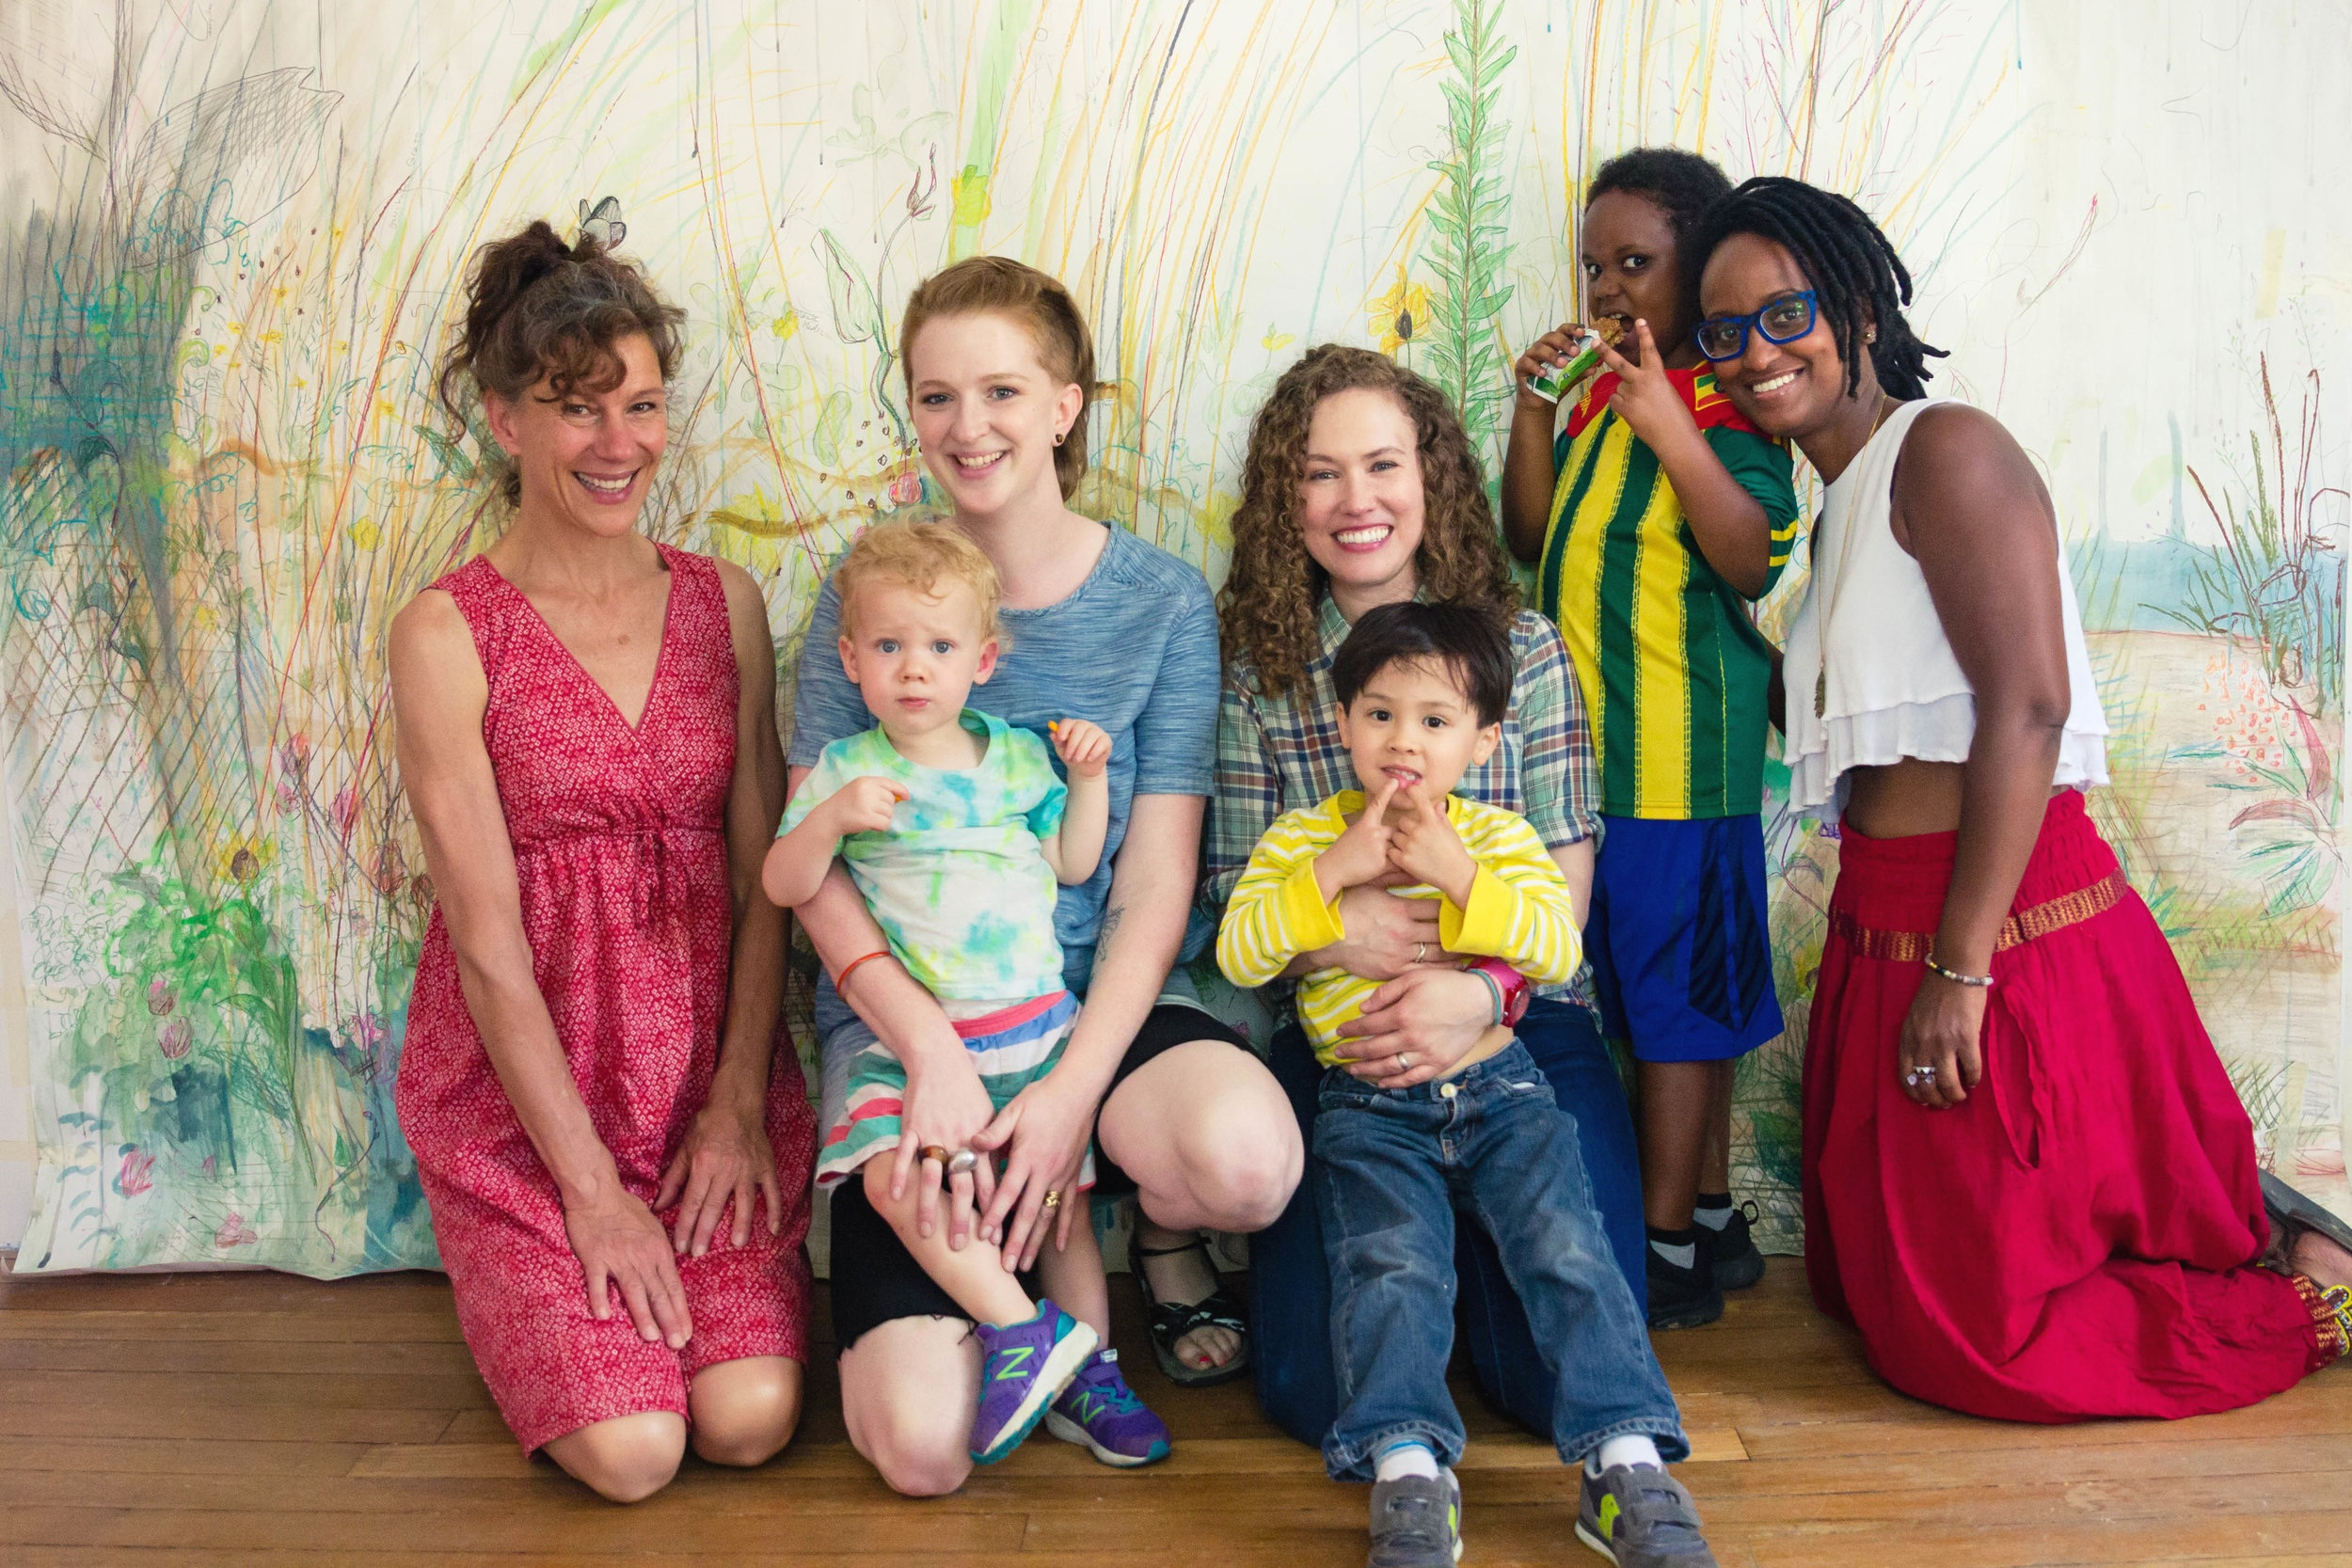 Participants of AMS at Rhizome: Diane Tyburski (childcare provider), Amy Hughes Braden and Quincy, Mariah Anne Johnson and Jeff Allan, Tsedaye Makonnen and Senai    Image credit: Leila Habib